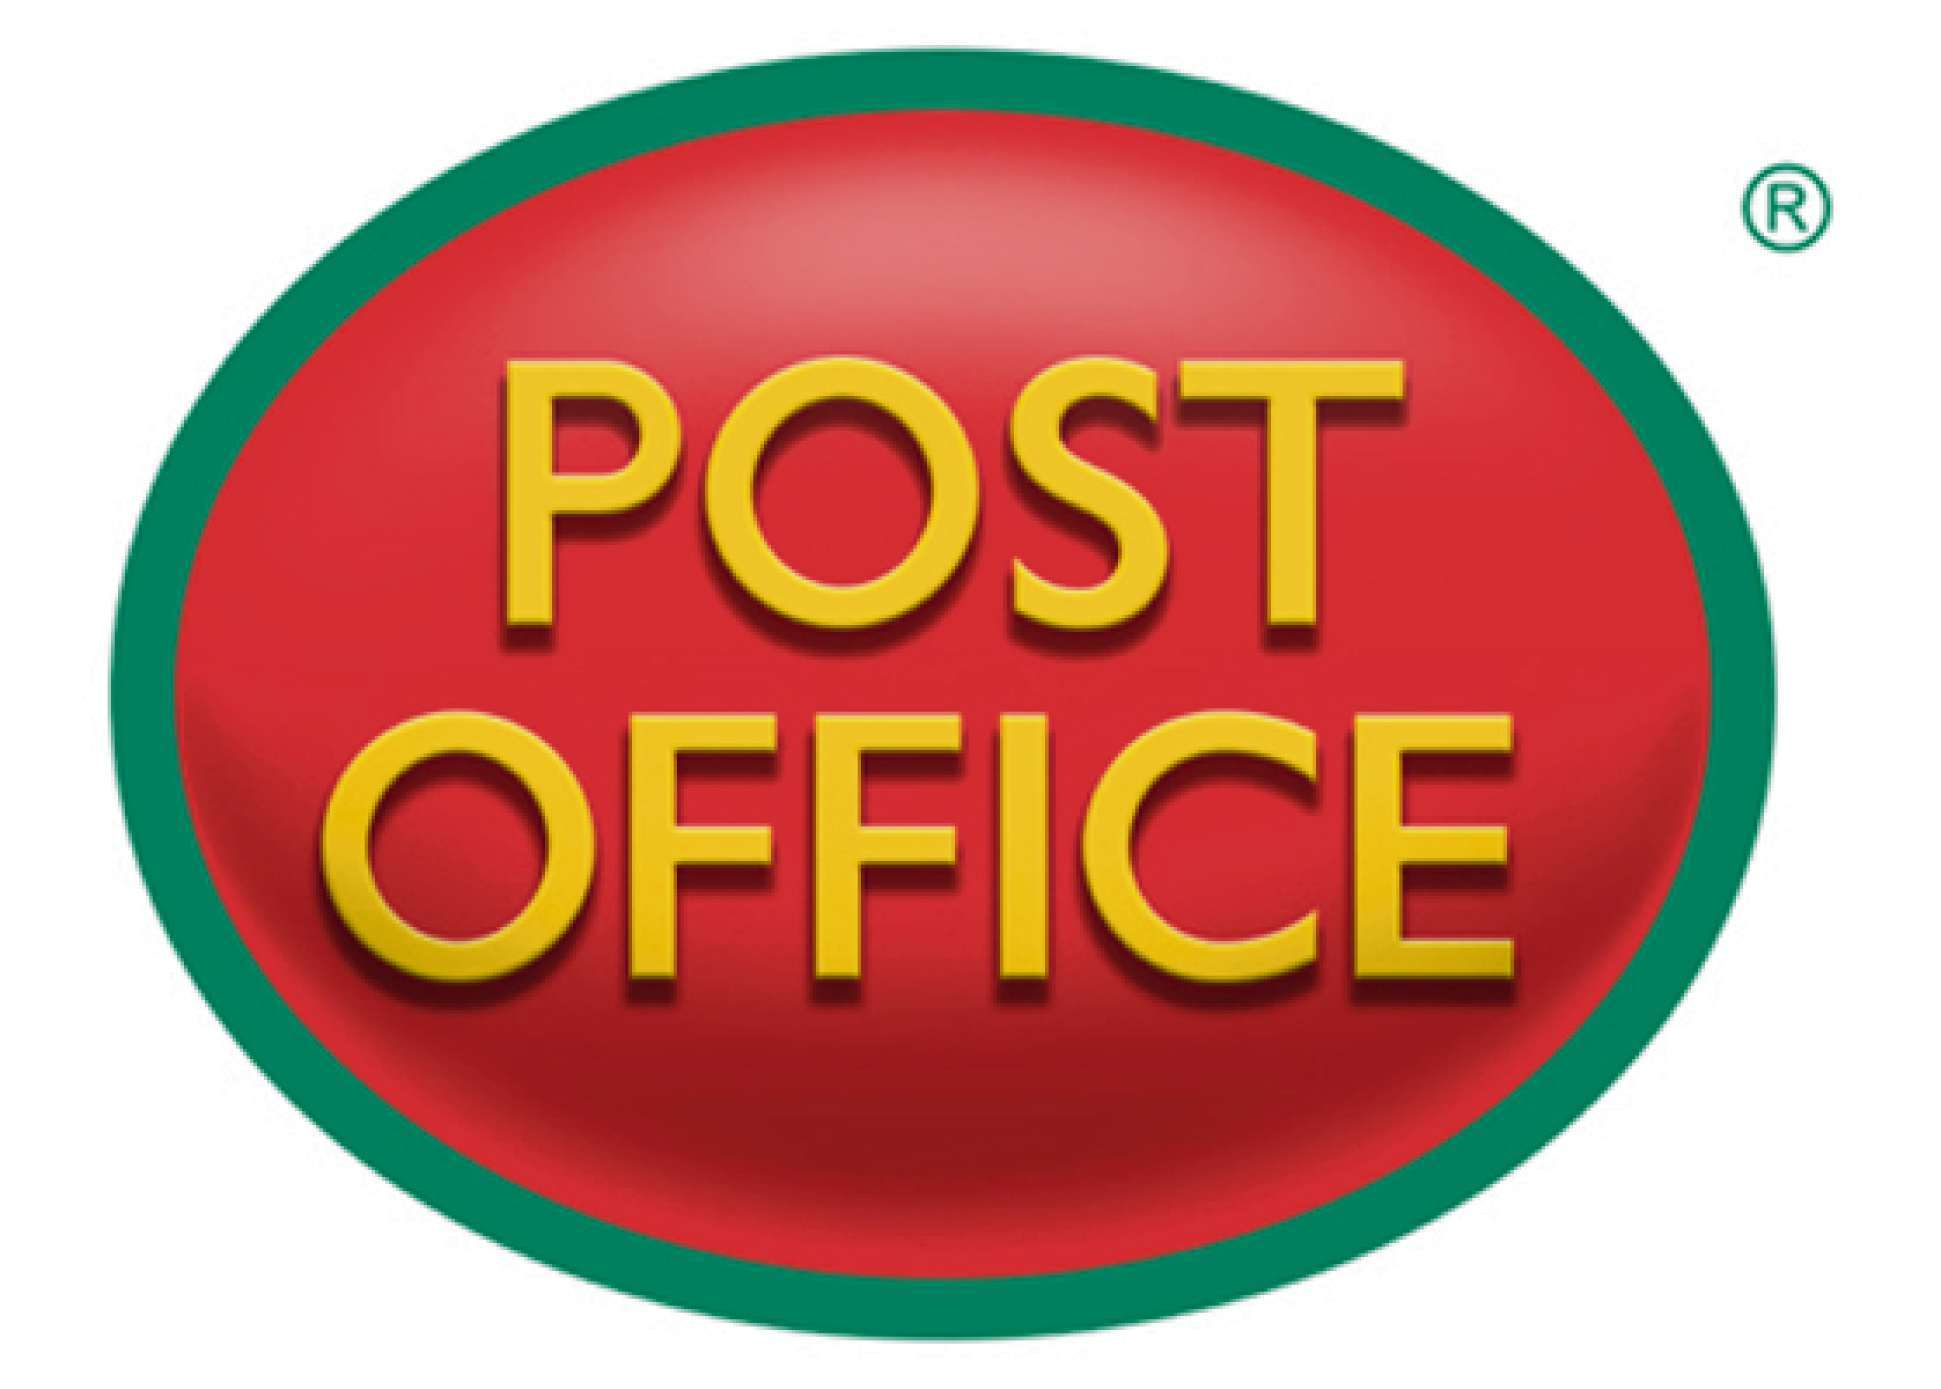 The Post Office is benefitting from investment